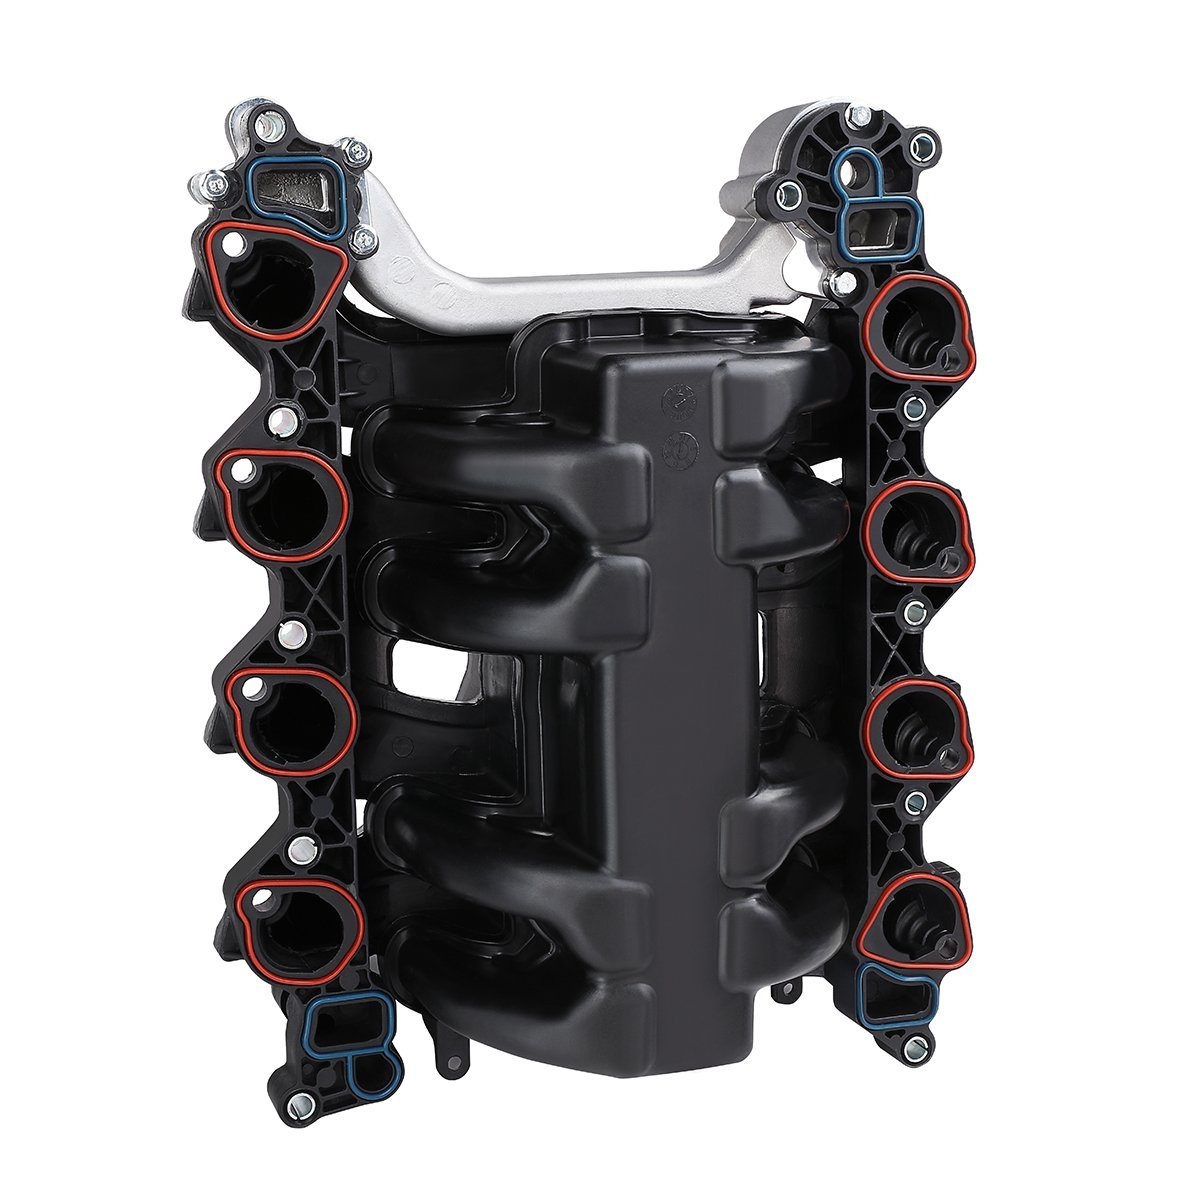 For Ford Mustang//Mercury Grand Marquis 4.6L SOHC OE Style Upper Intake Manifold 615-178